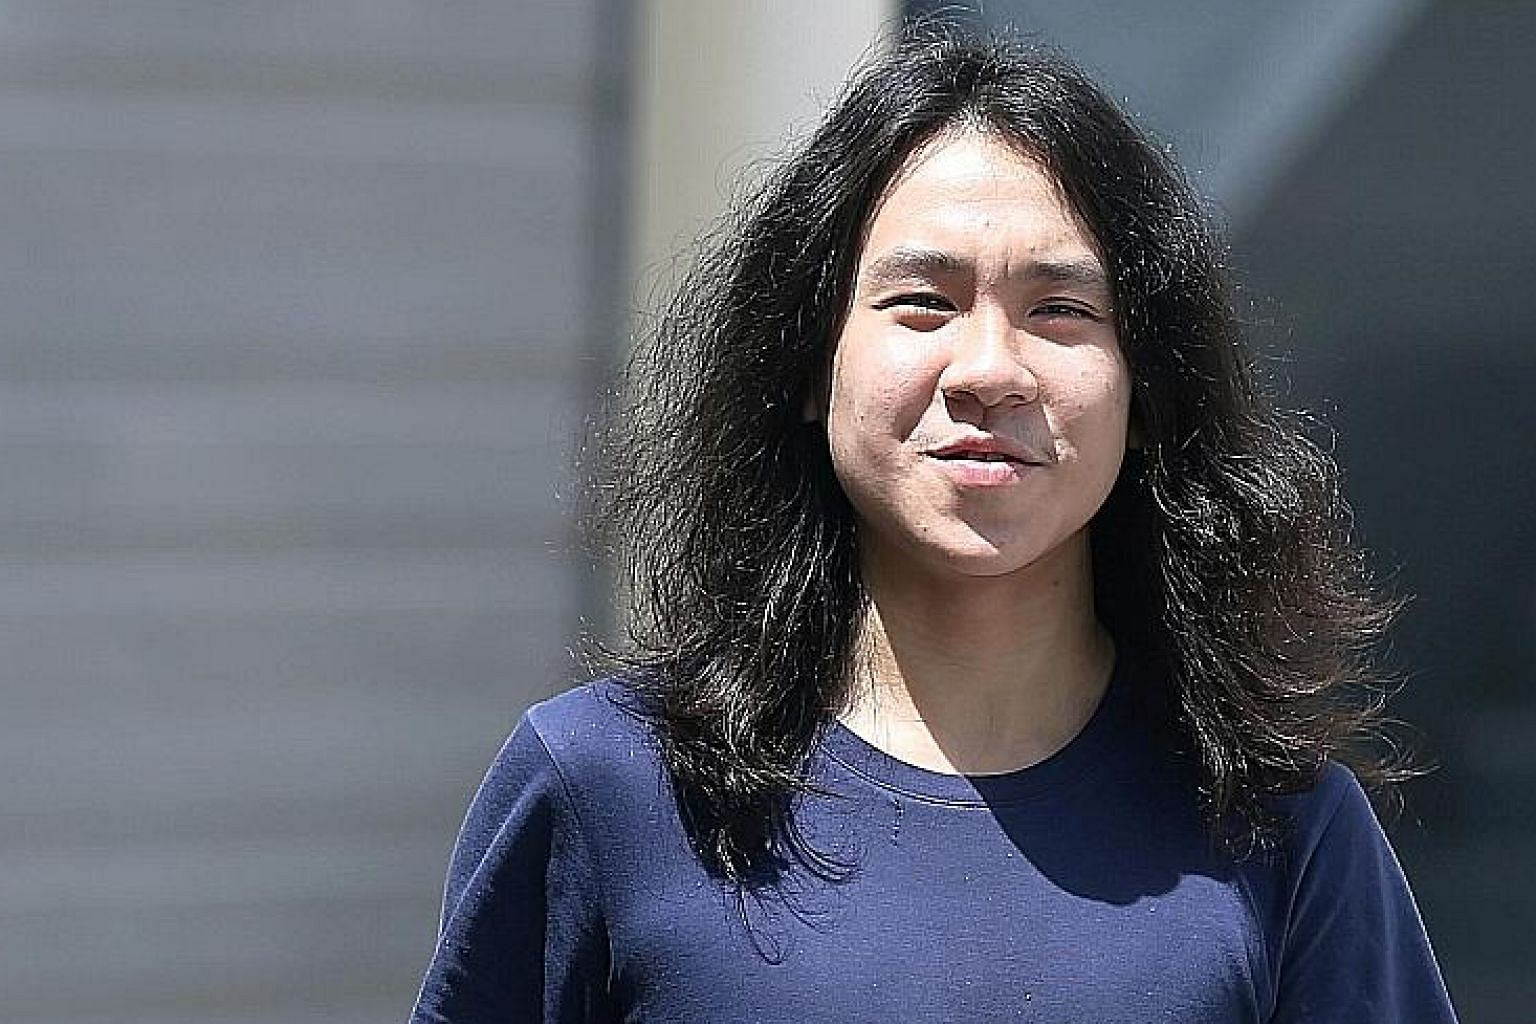 Amos Yee at the State Courts in September last year. Buzzfeed wrote an article on how he fled Singapore at the end of last year to the United States to seek asylum and has been stuck in a detention centre since.